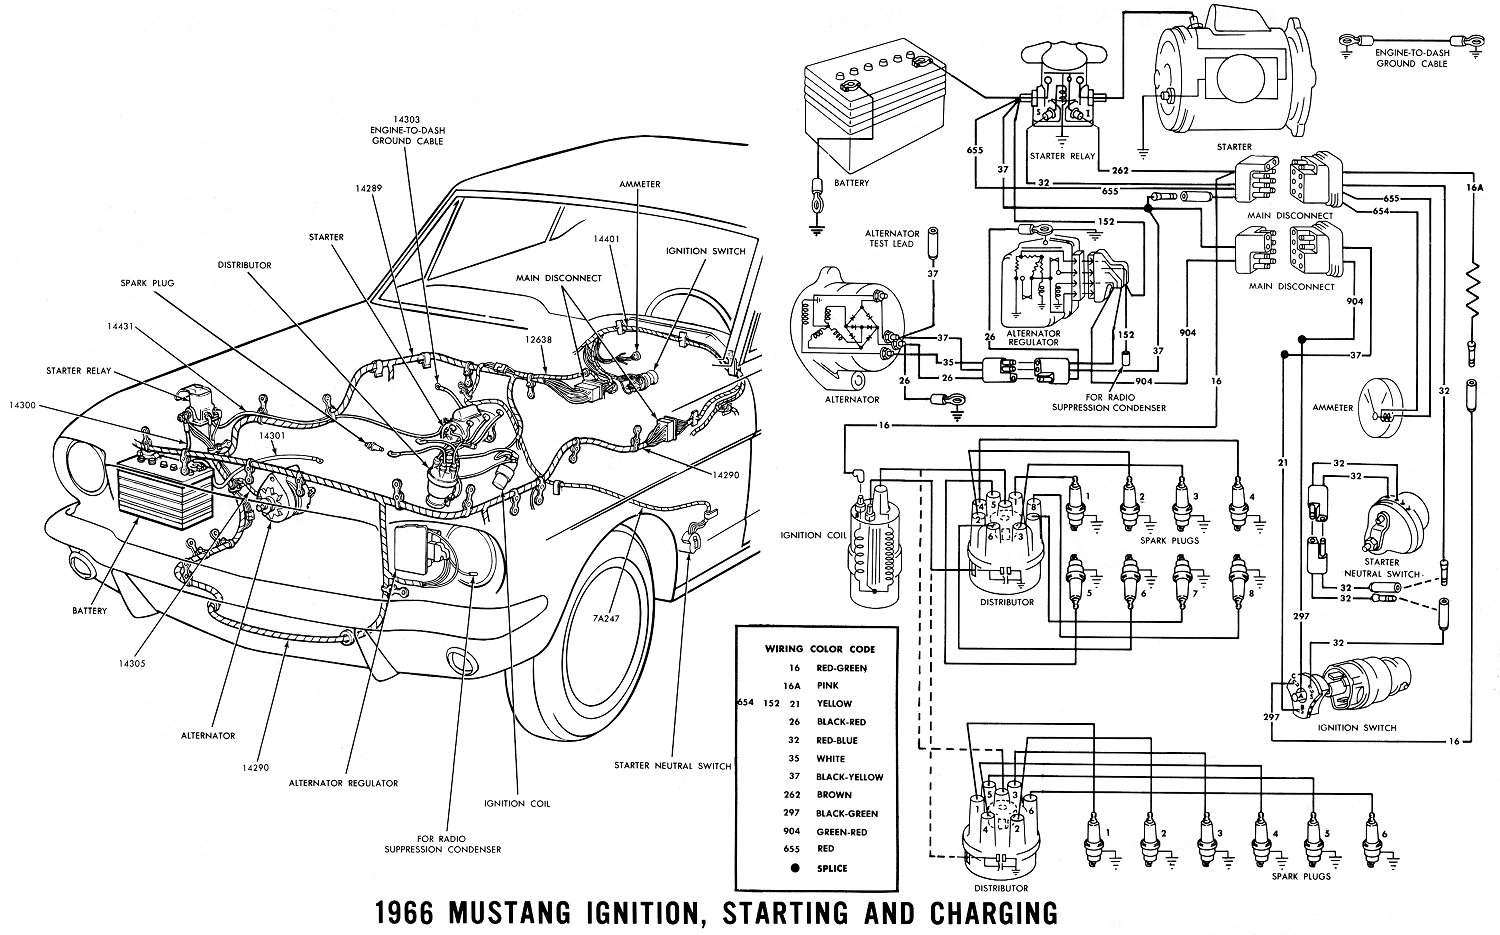 66ignit 1966 mustang wiring diagrams average joe restoration 1967 Mustang Wiring Schematic at alyssarenee.co